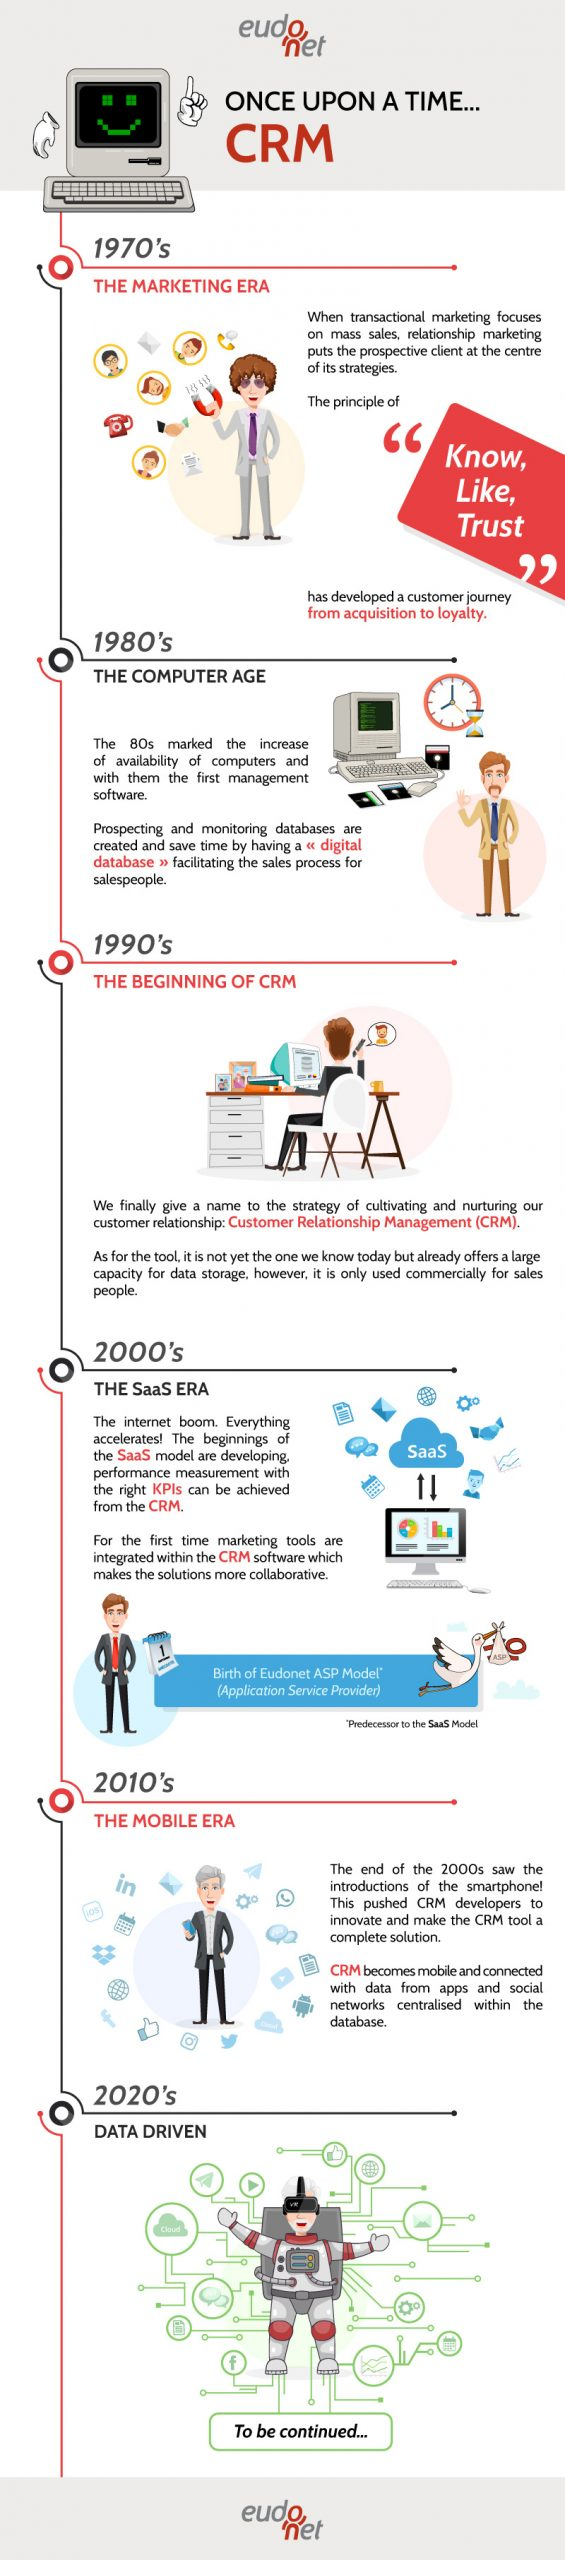 Once upon a time CRM infographics